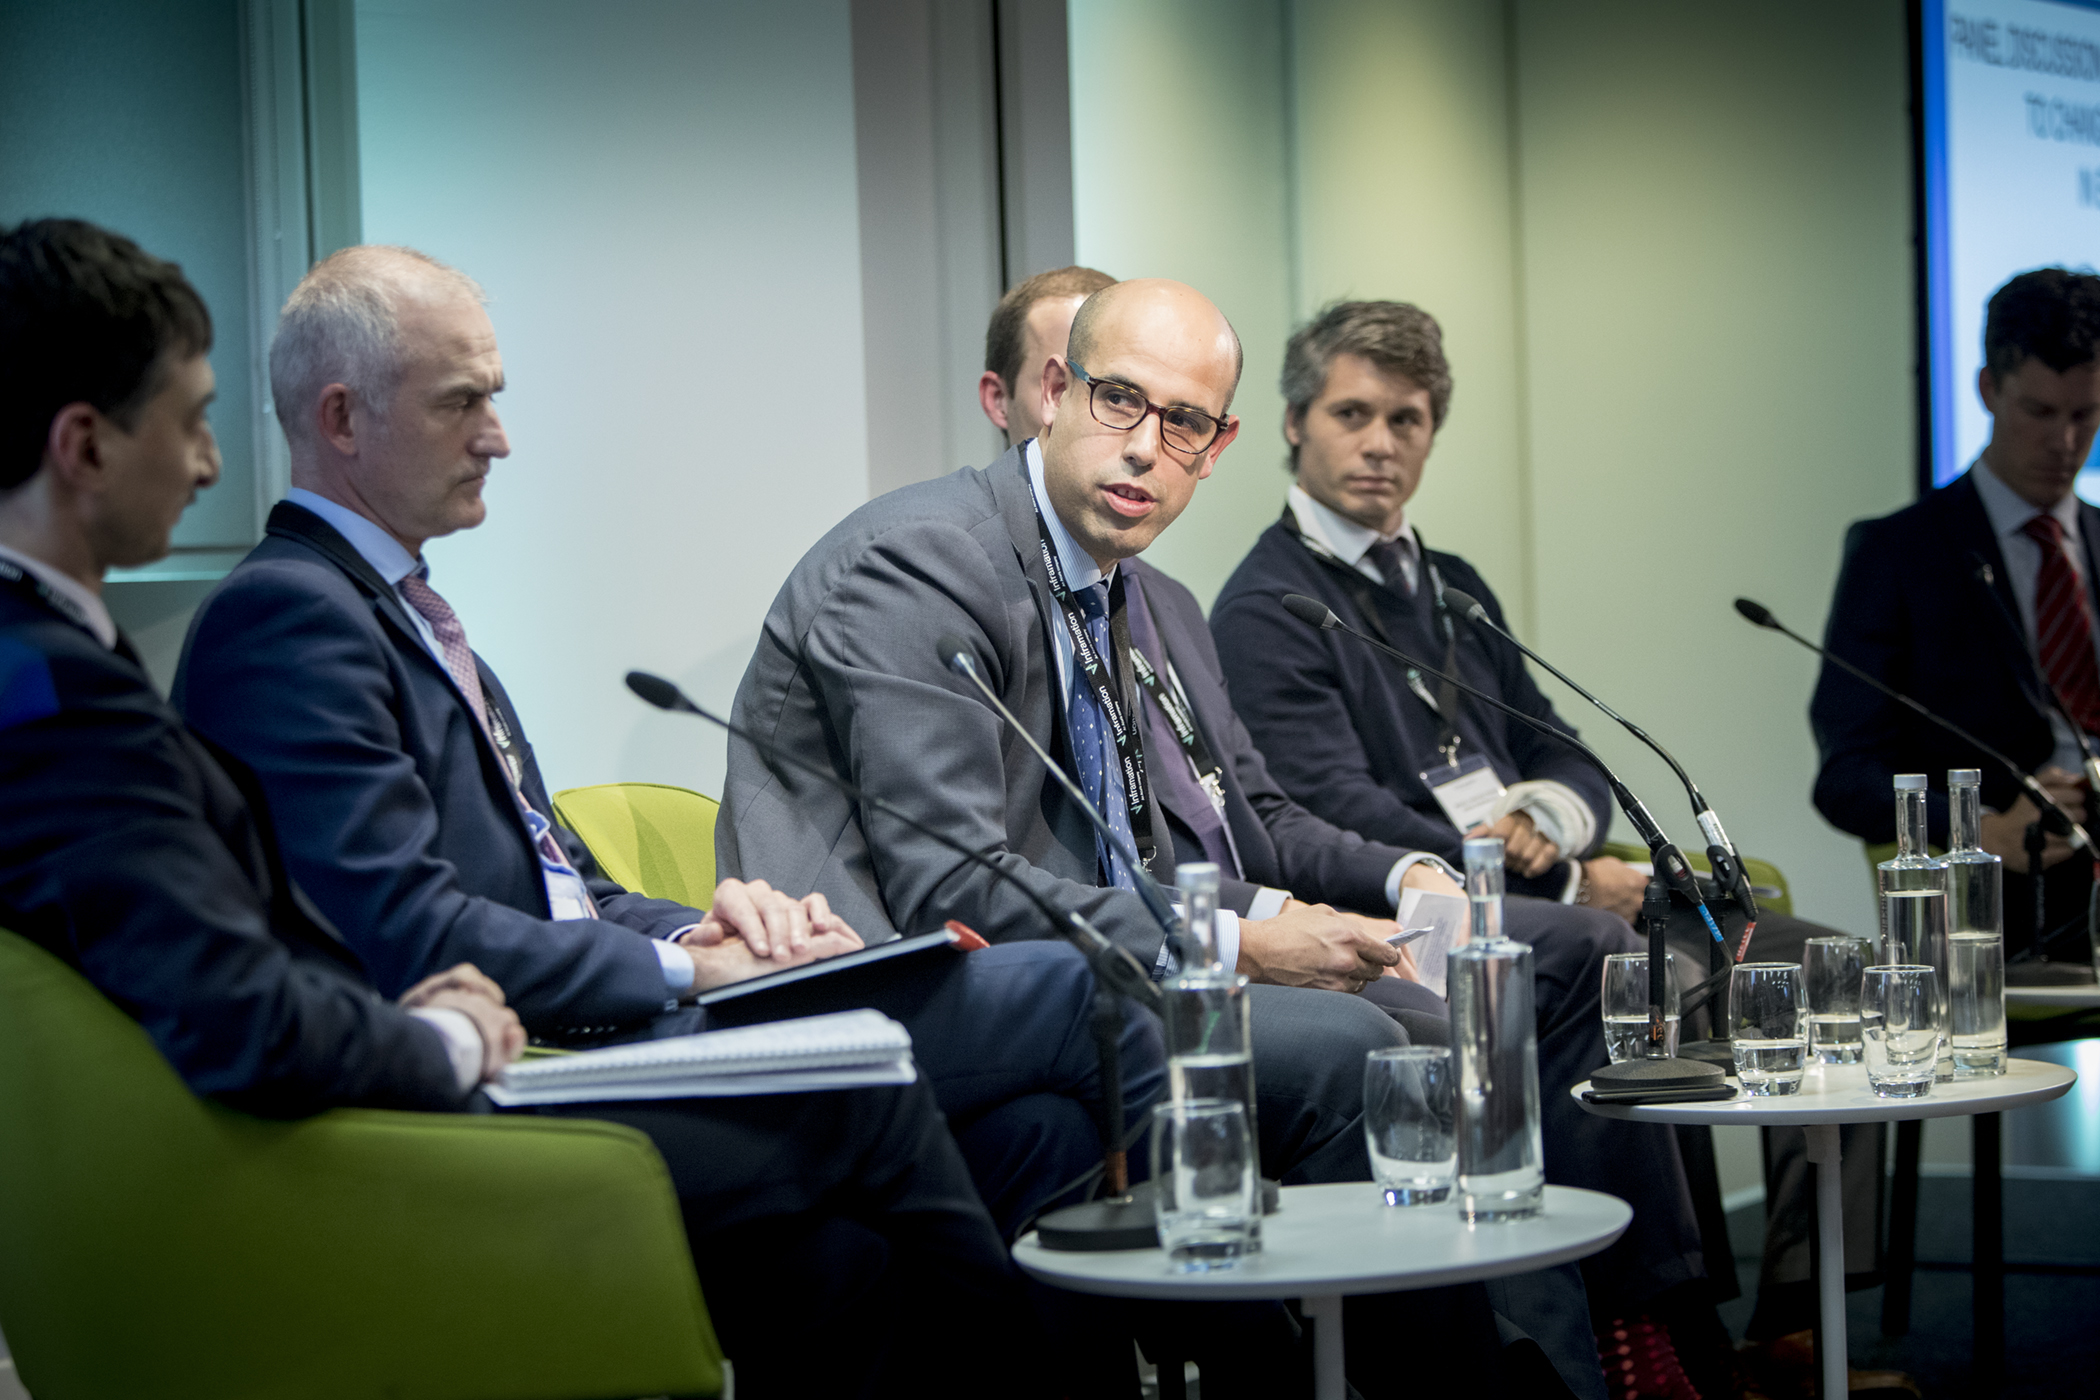 Conference panel at renewable energy event